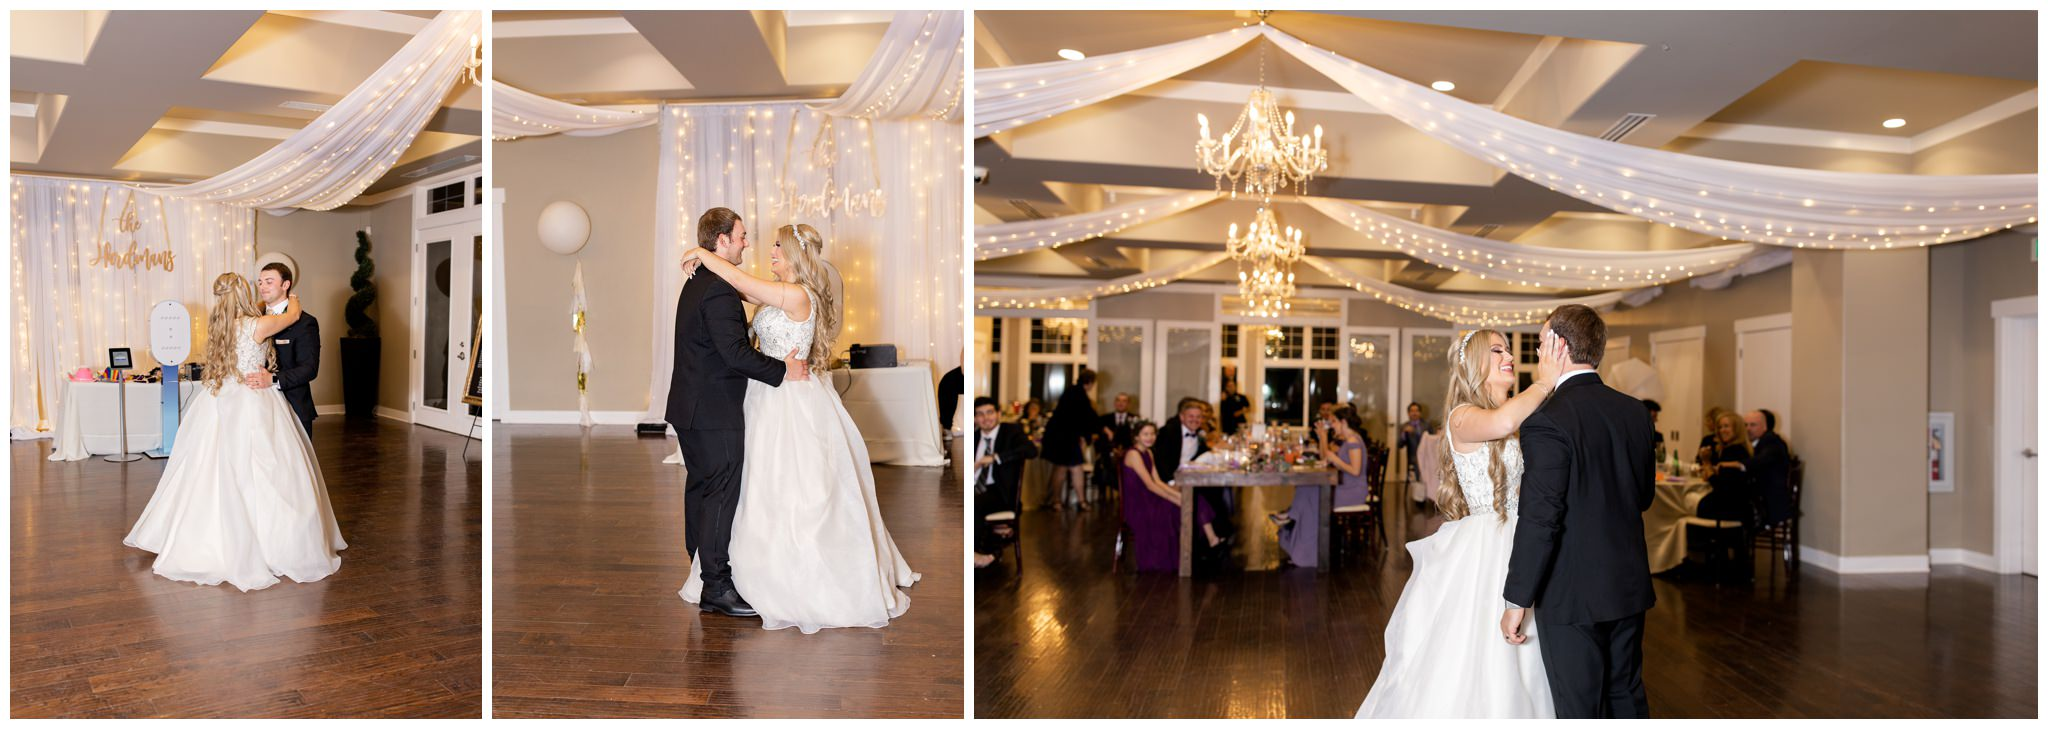 Bride and Groom sharing their first dance as husband and wife.